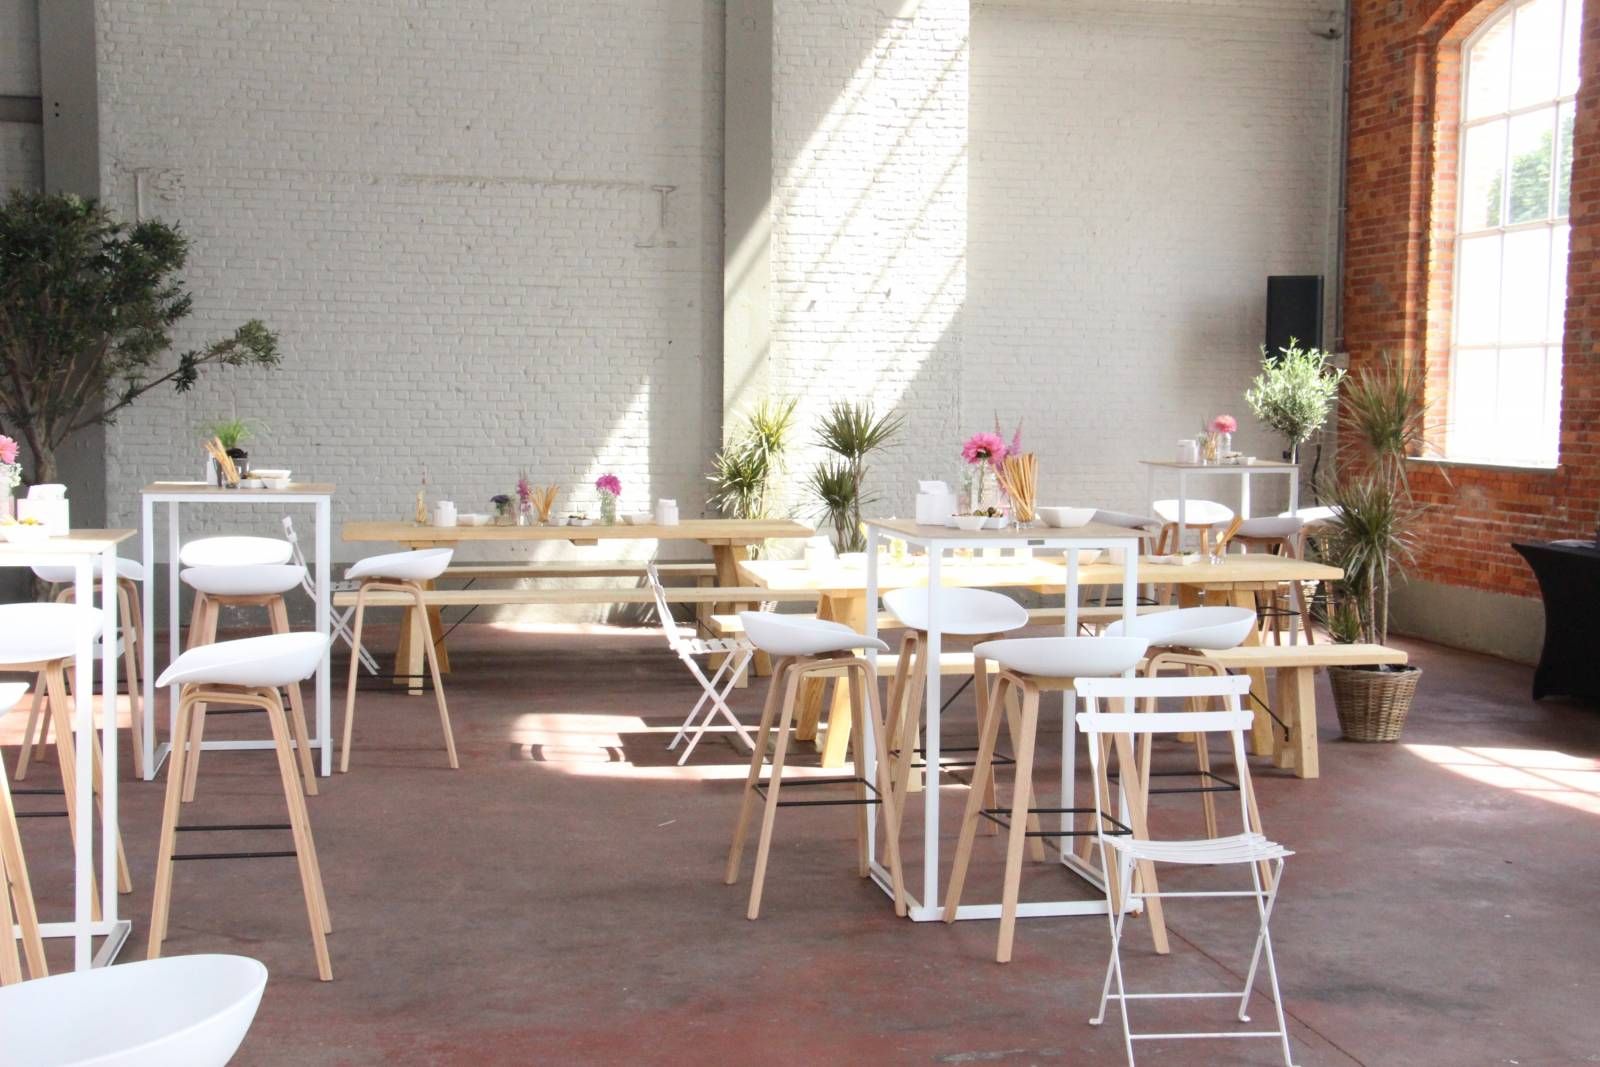 Hangar 43 - Feestzaal Oost-Vlaanderen - Industrieel - House of Weddings - 19